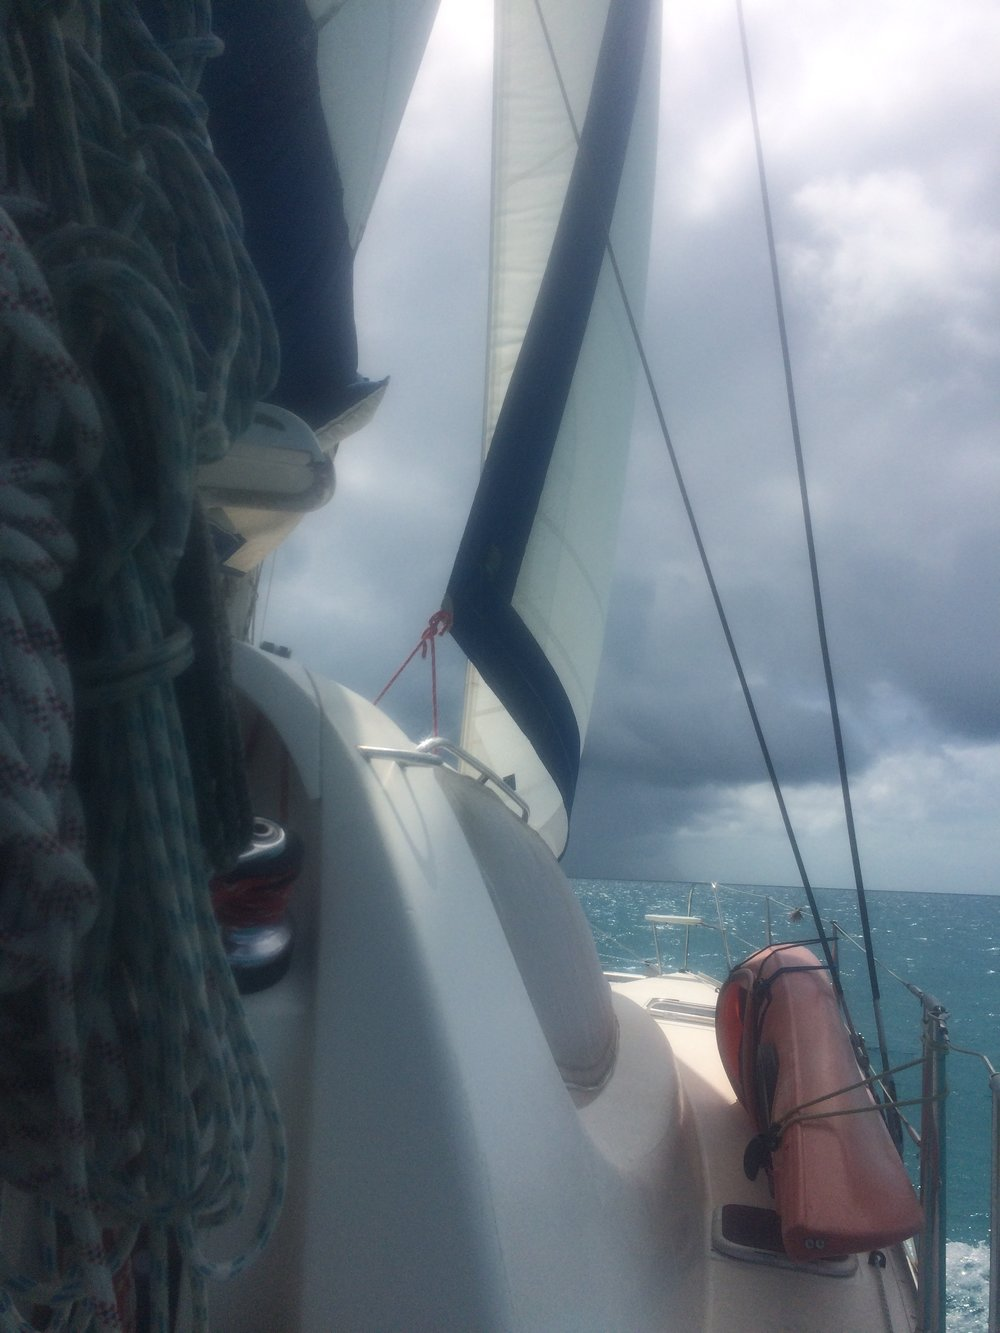 Our sail to Cambridge Cay presented us with some picturesque moments on our 3rd day.